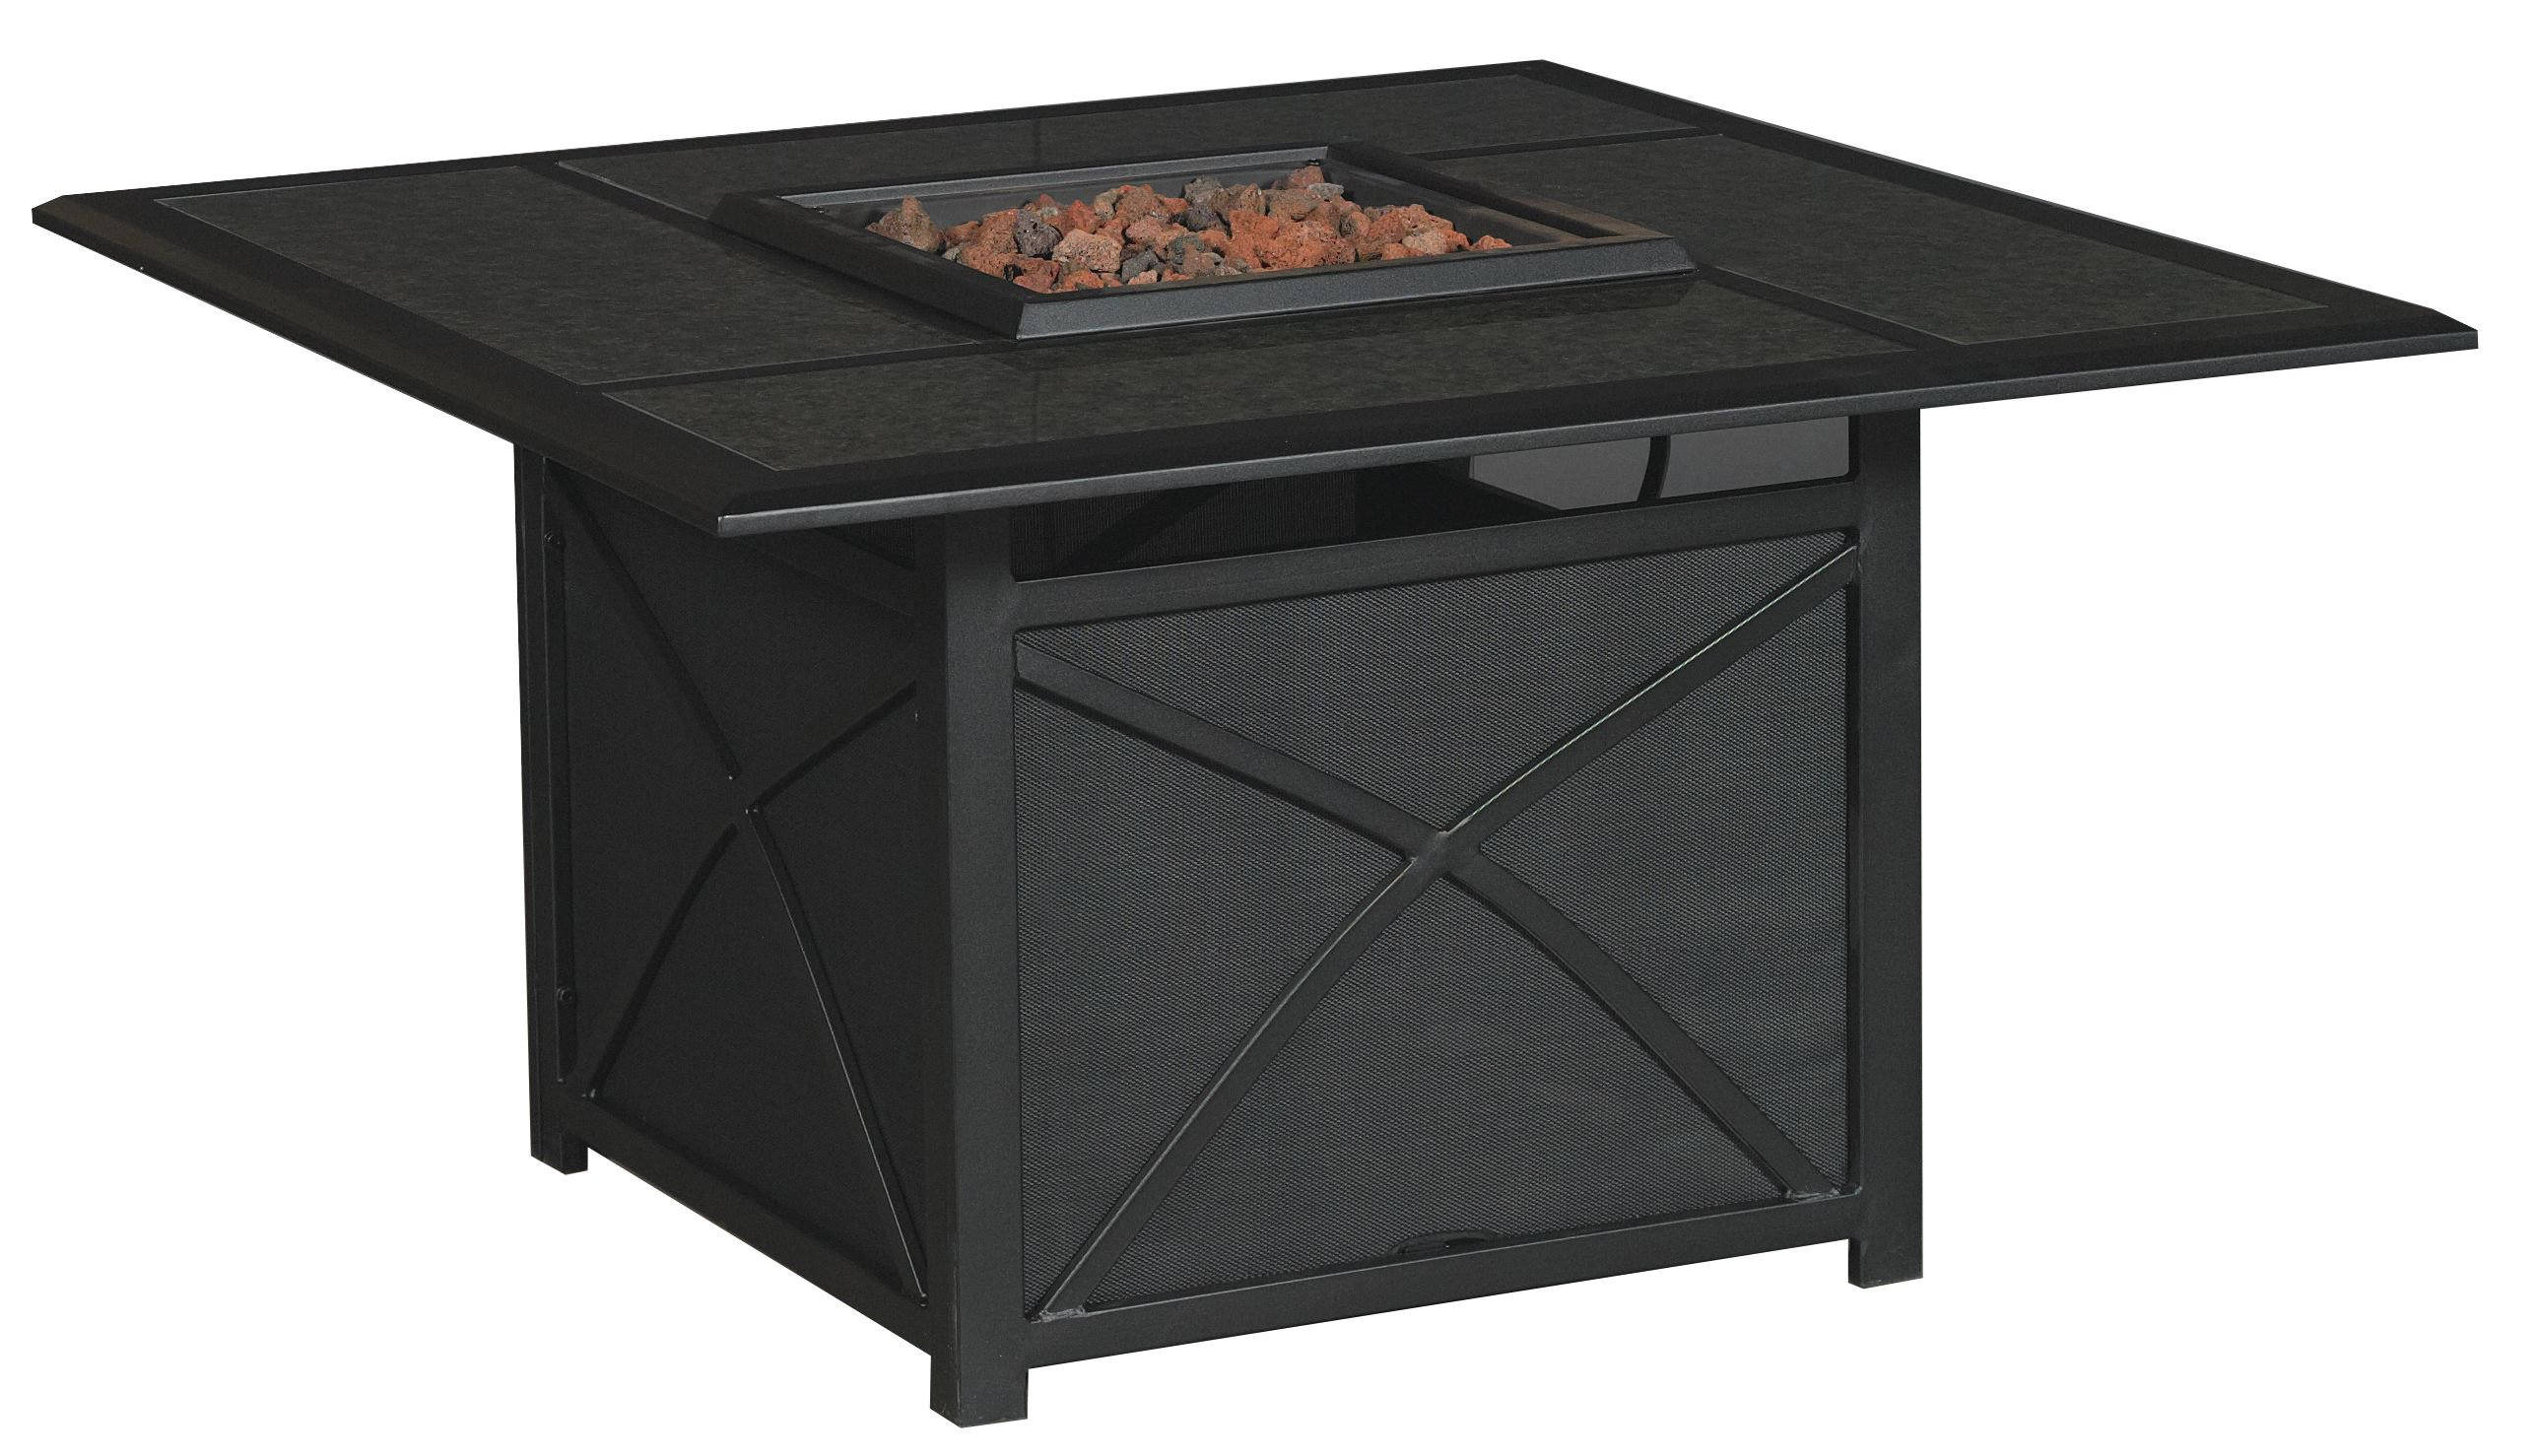 Revere Collection Outdoor Patio 5 Piece Fire Pit Set